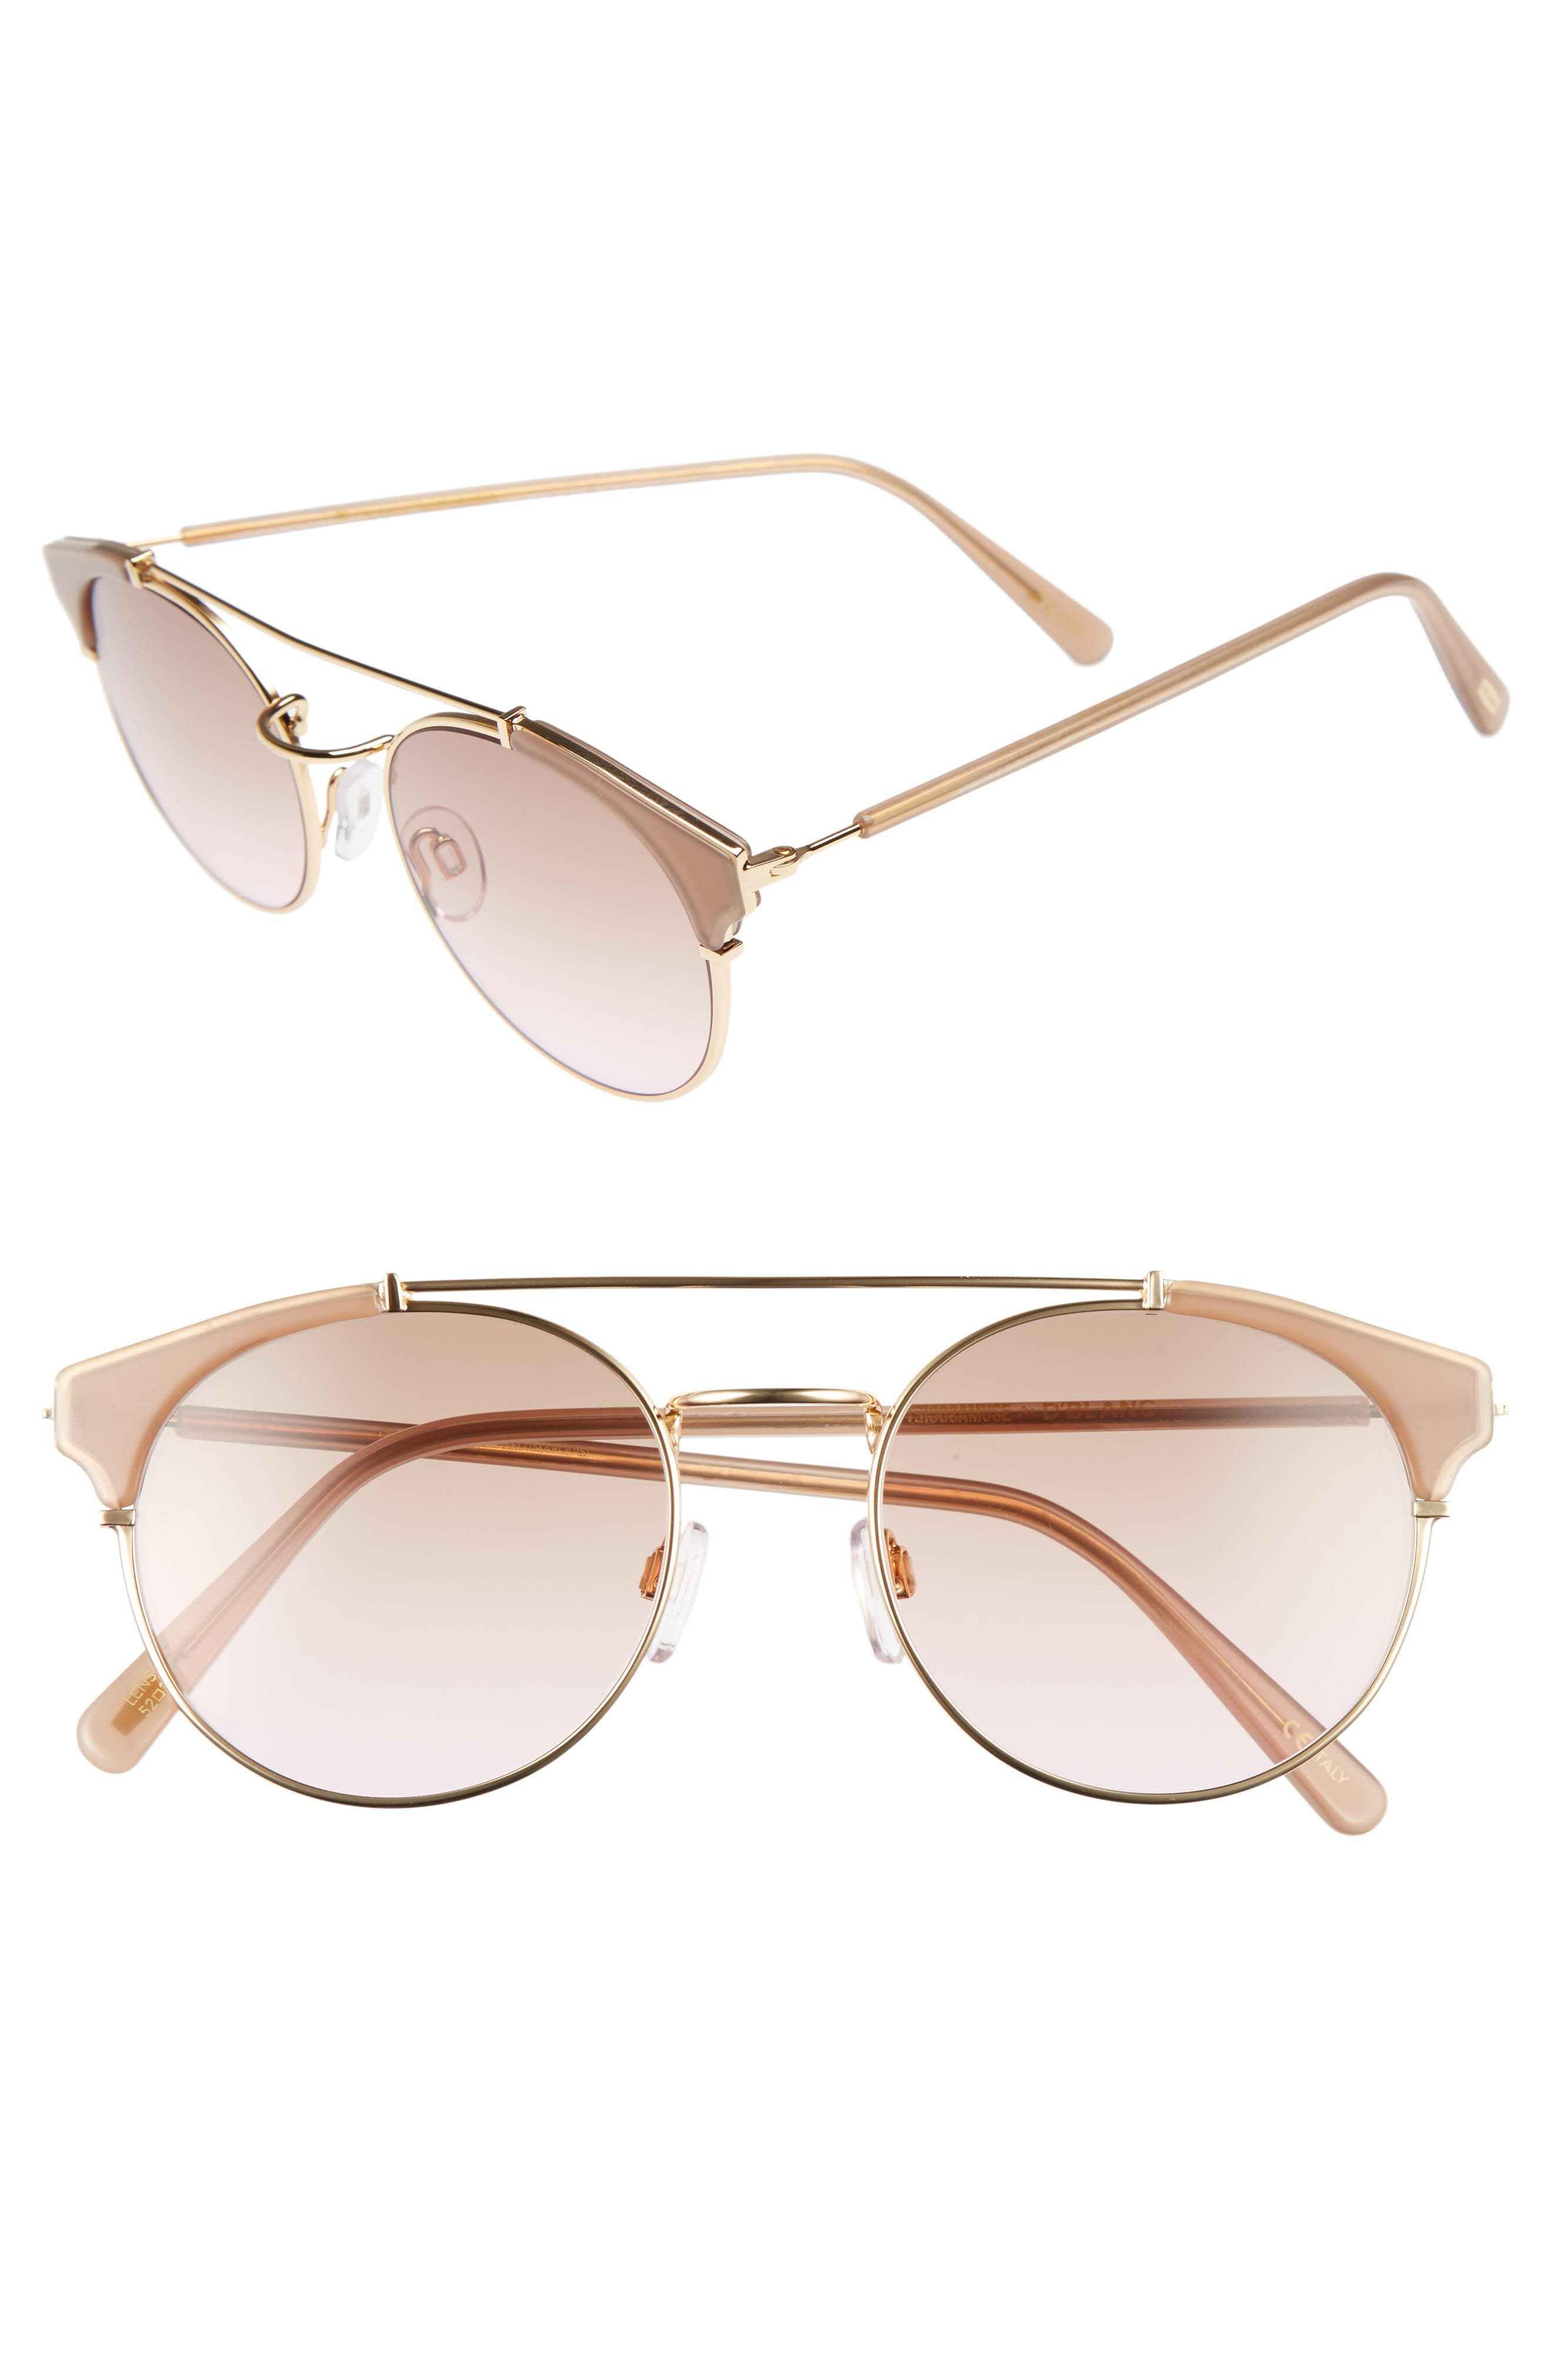 D'BLANC x Amuse Society Dosed Marquis 52mm Gradient Round Aviator Sunglasses,                             Main thumbnail 3, color,